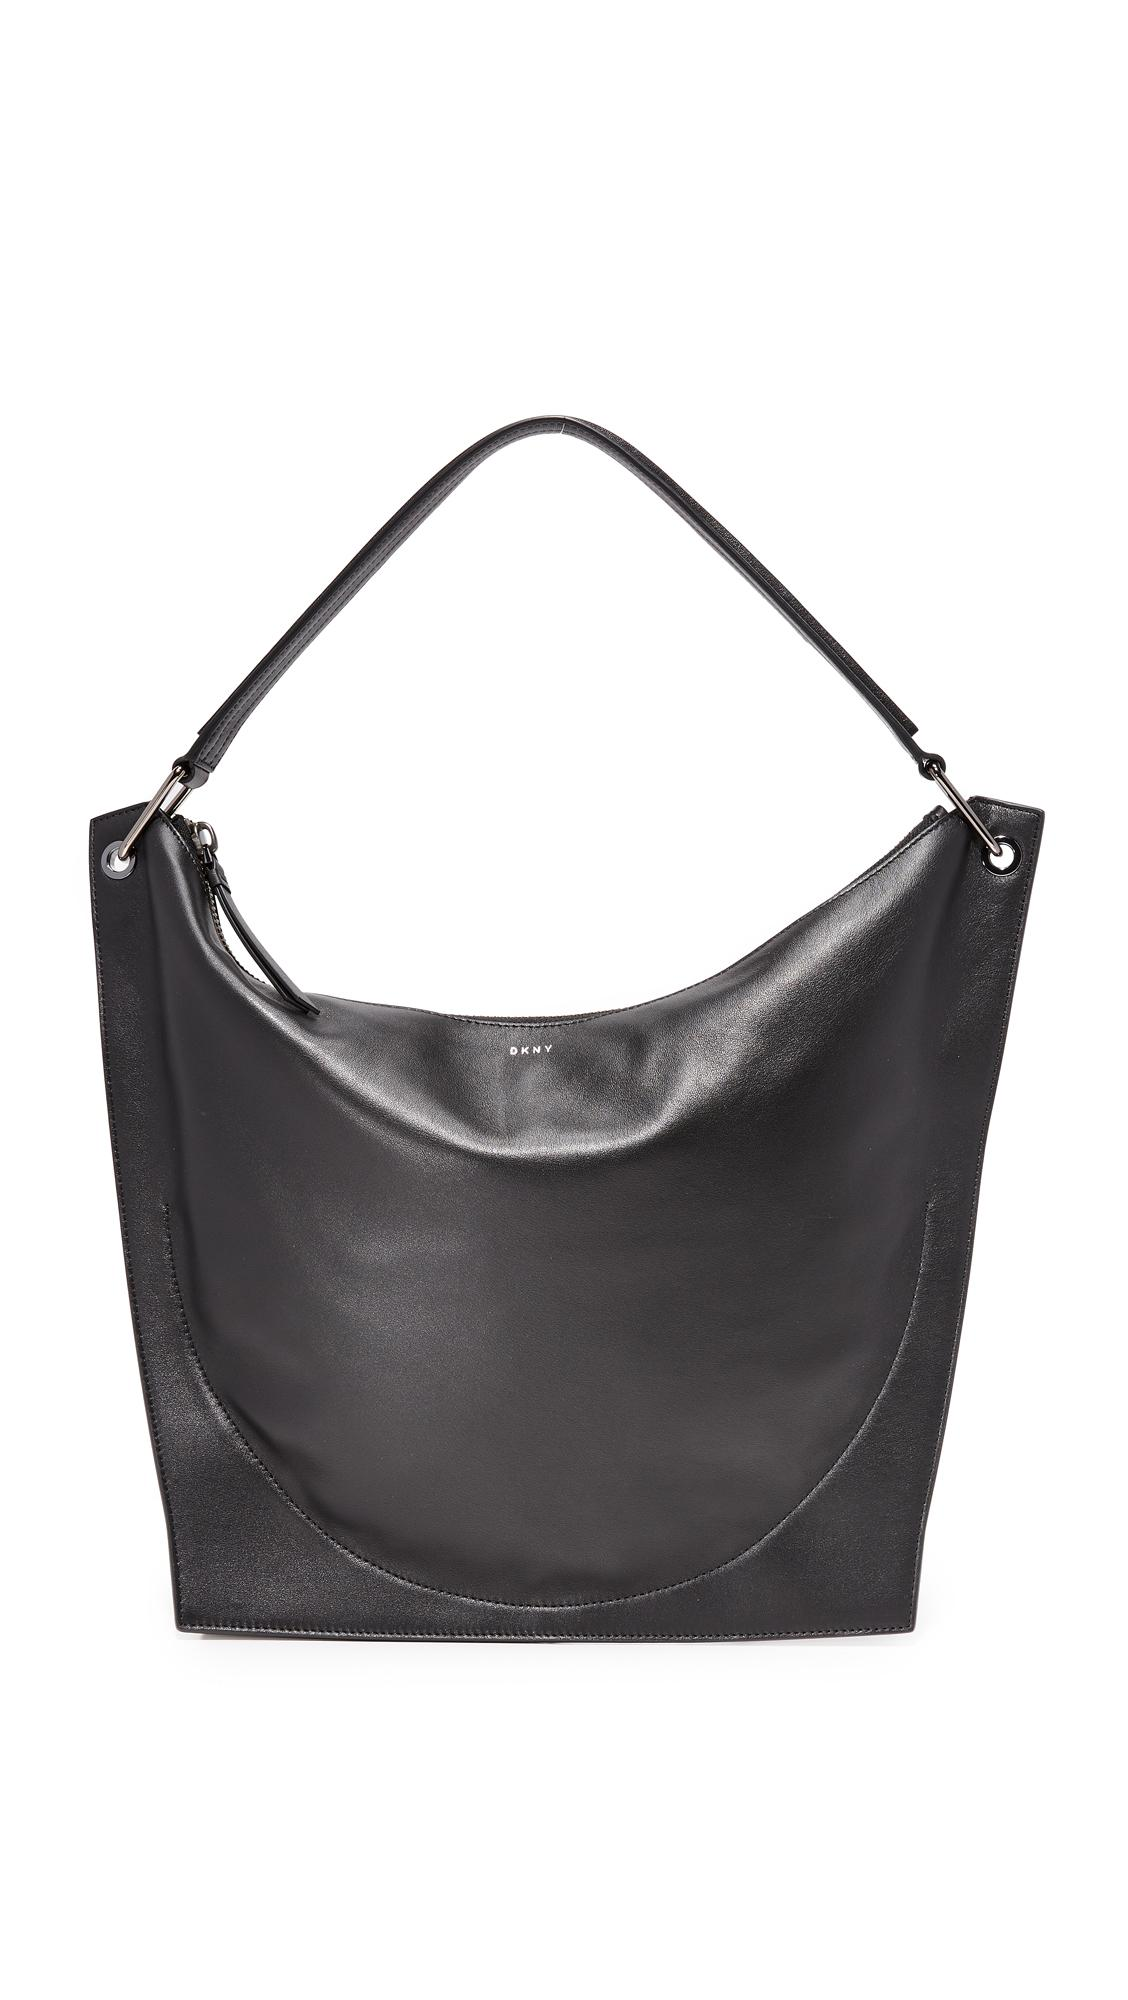 b384e58e60 Dkny Molded Hobo Bag in Black - Lyst